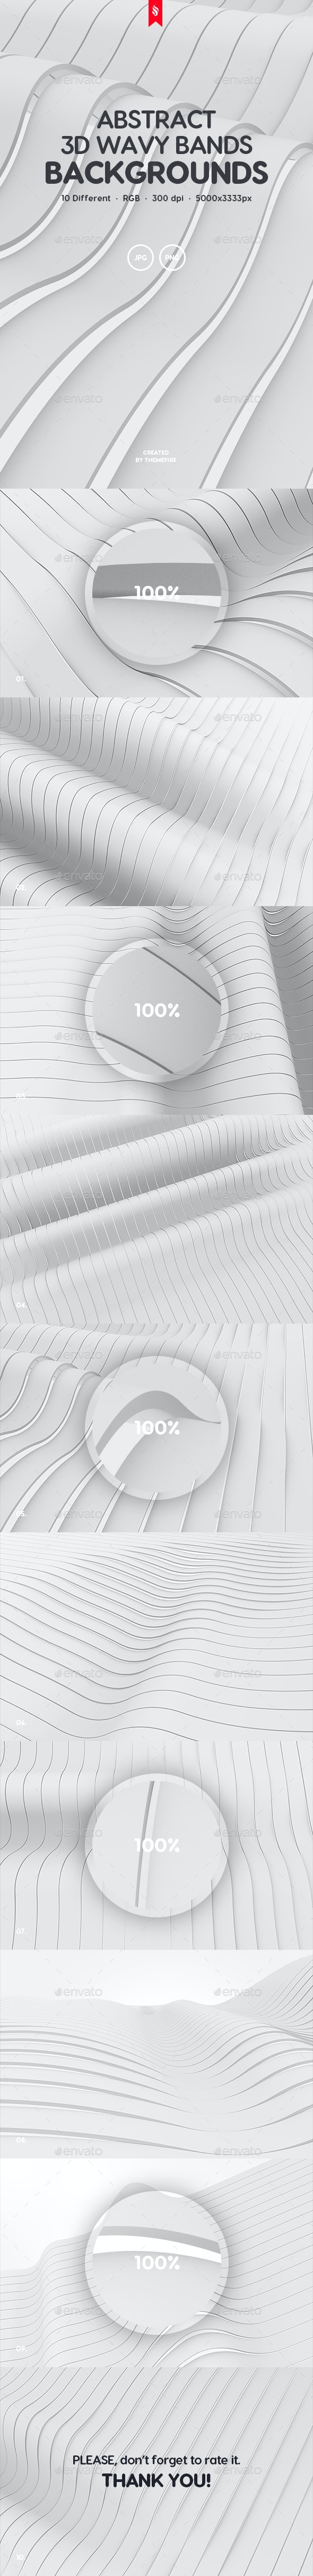 White Wavy Bands Abstract 3D Backgrounds - Abstract Backgrounds